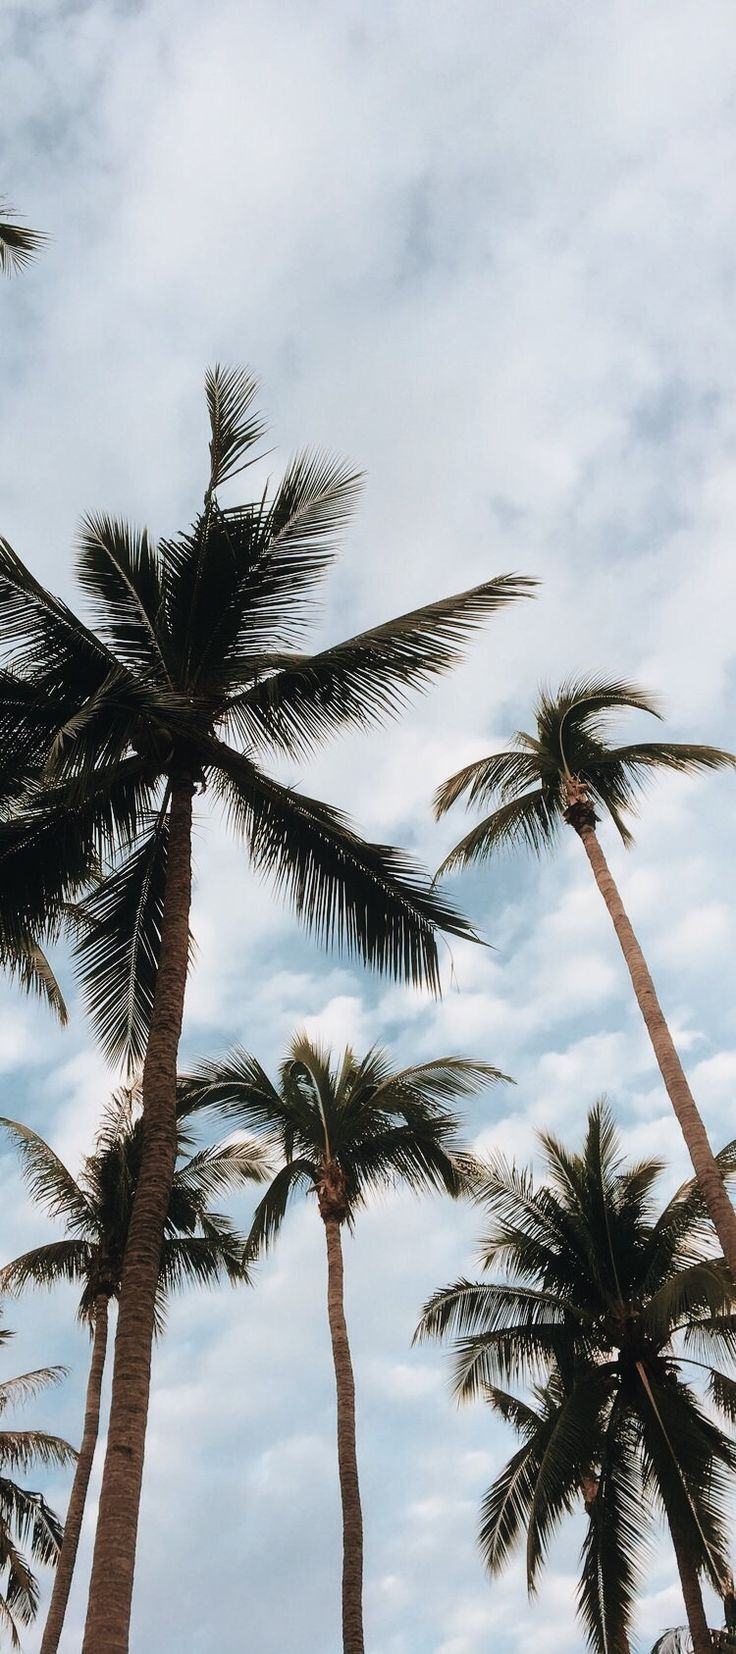 Tumblr Wallpapers Wallpaper Palms Leaves Sky Iphonelockscreen Tumblr Wallpapers Wallpaper P Palm Tree Photography Wallpaper Iphone Summer Iphone Wallpaper